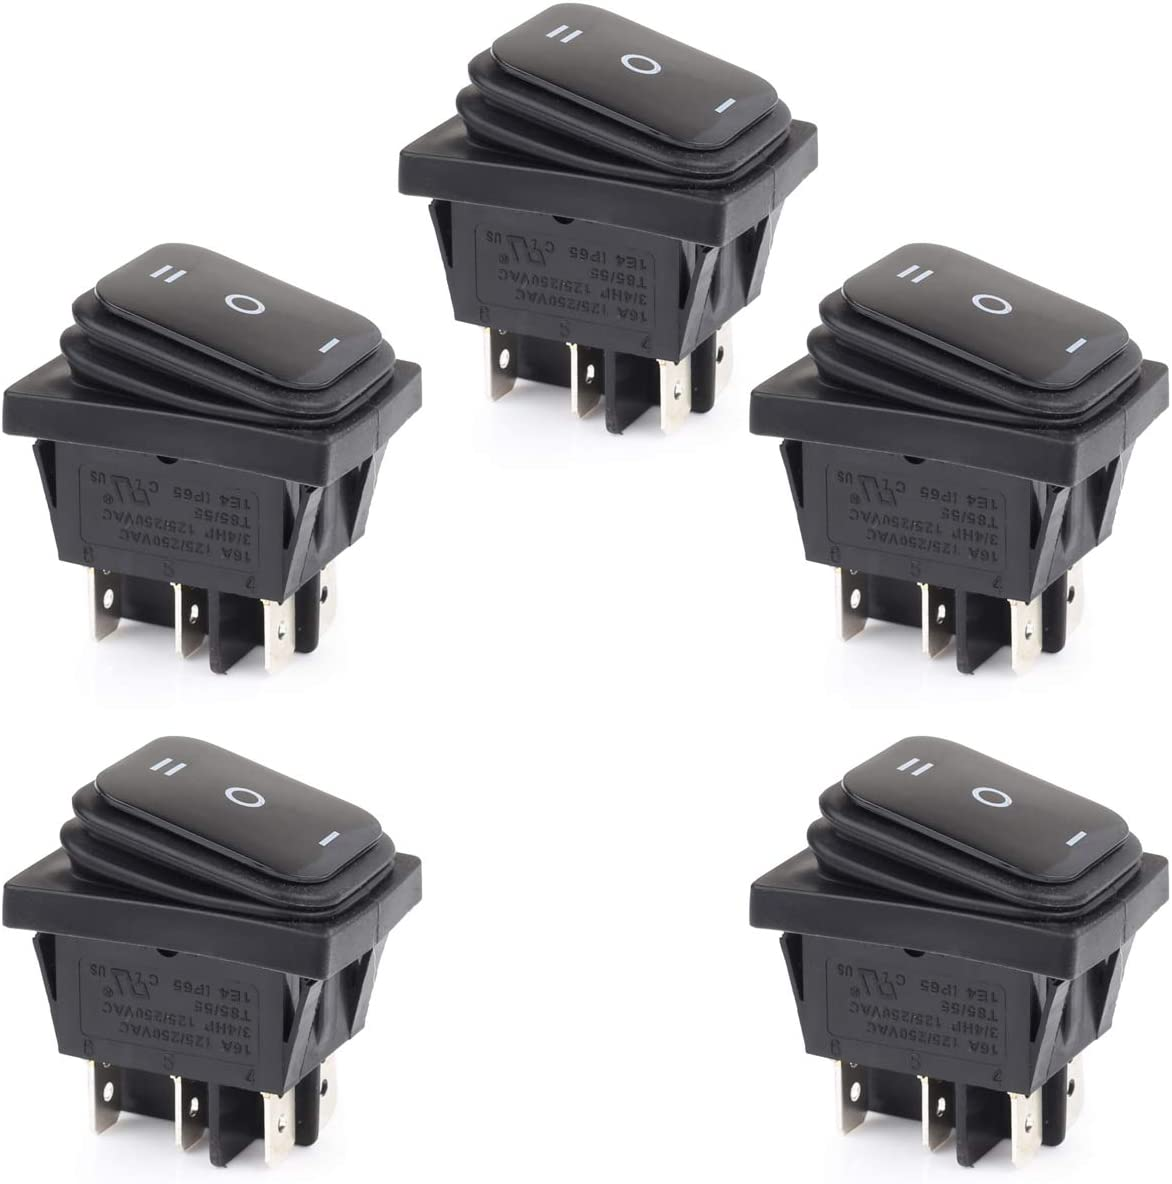 Clyxgs Single Side Boat Switch Rocker Switch 3 Files All Black 16A 125VAC 3 Foot Silver Contacts 5PCS